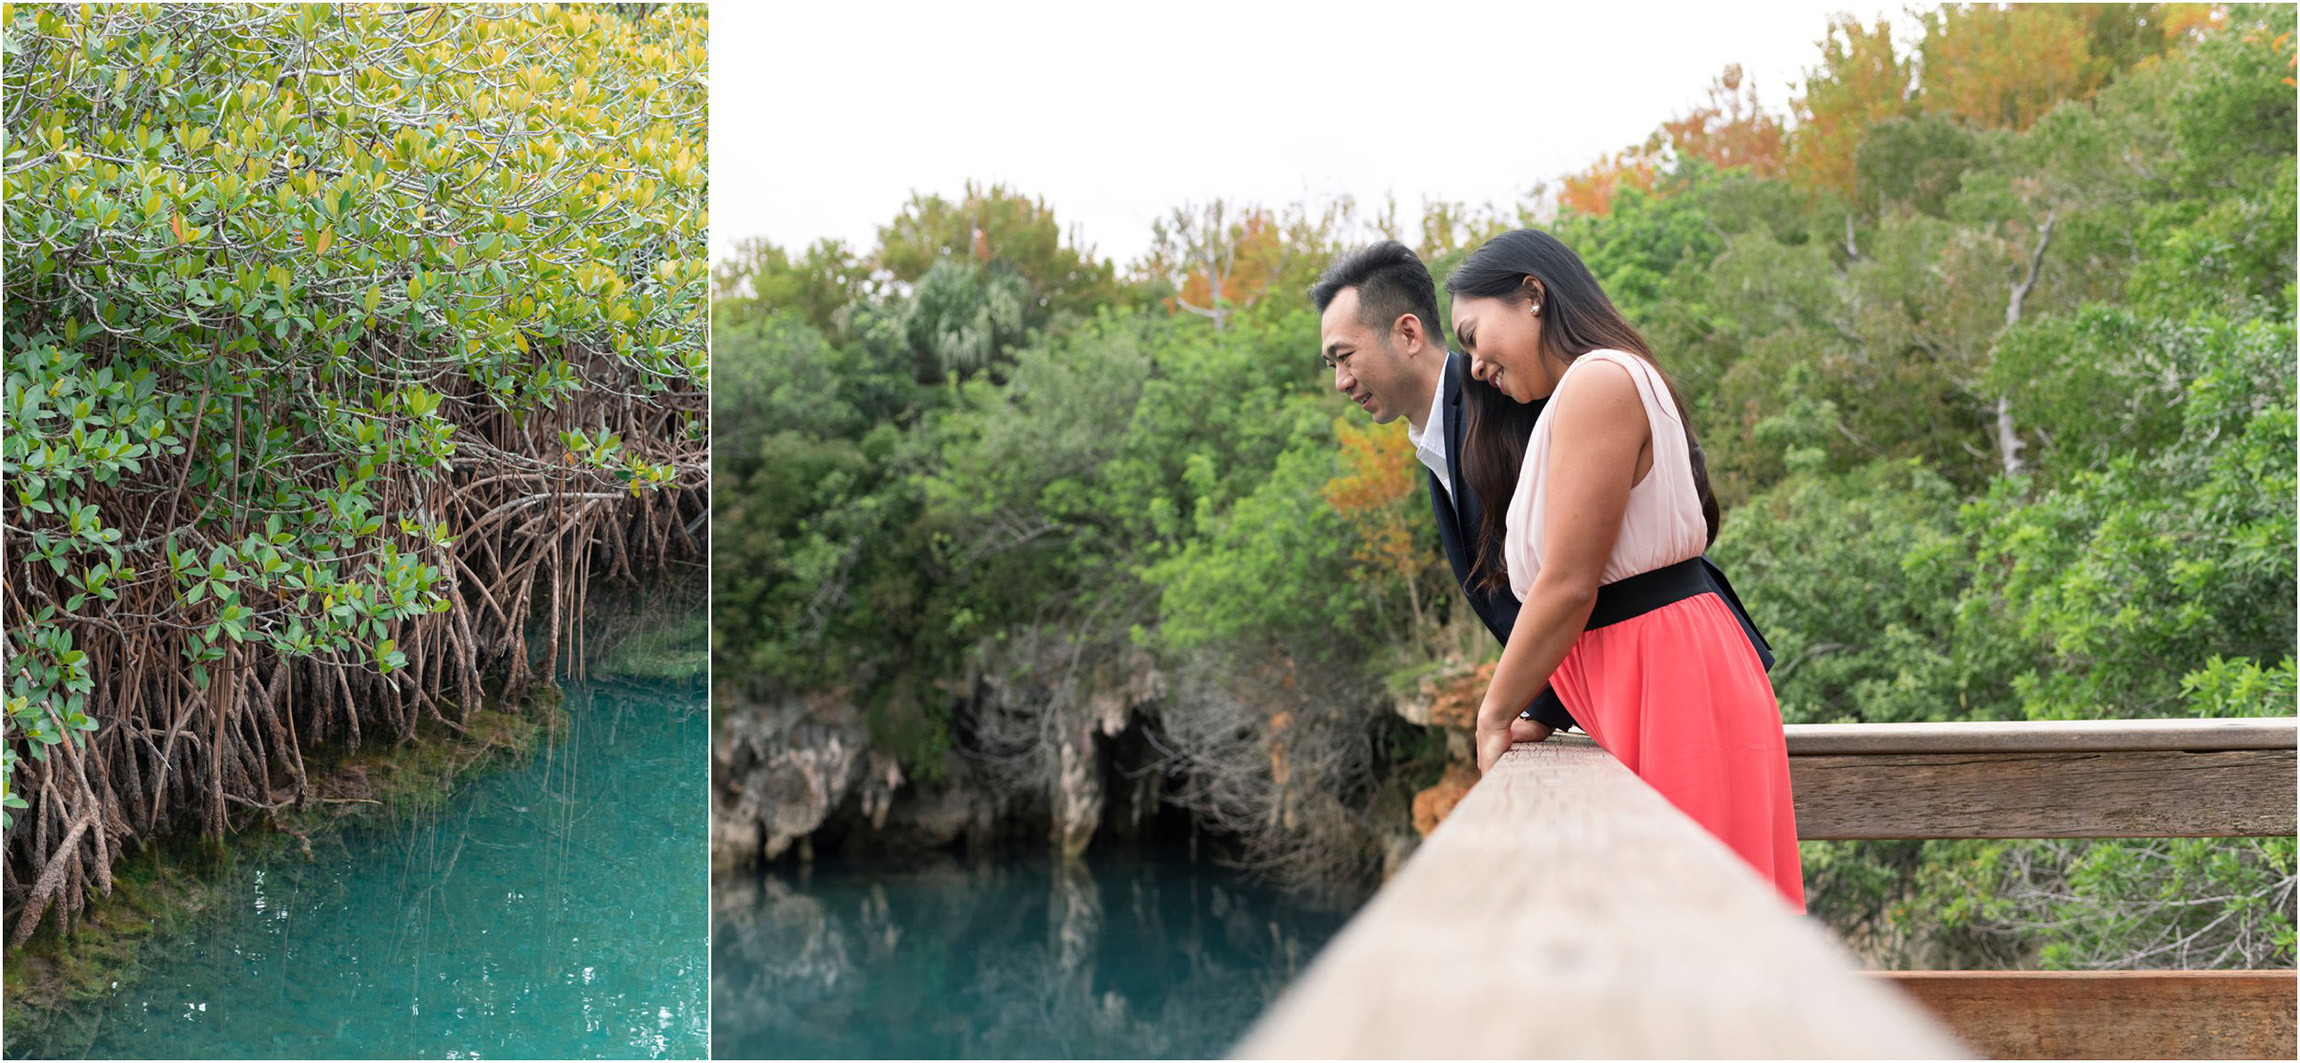 ©FianderFoto_Bermuda Engagement Photographer_Tom Moores Jungle_Owen_Chanson_011.jpg